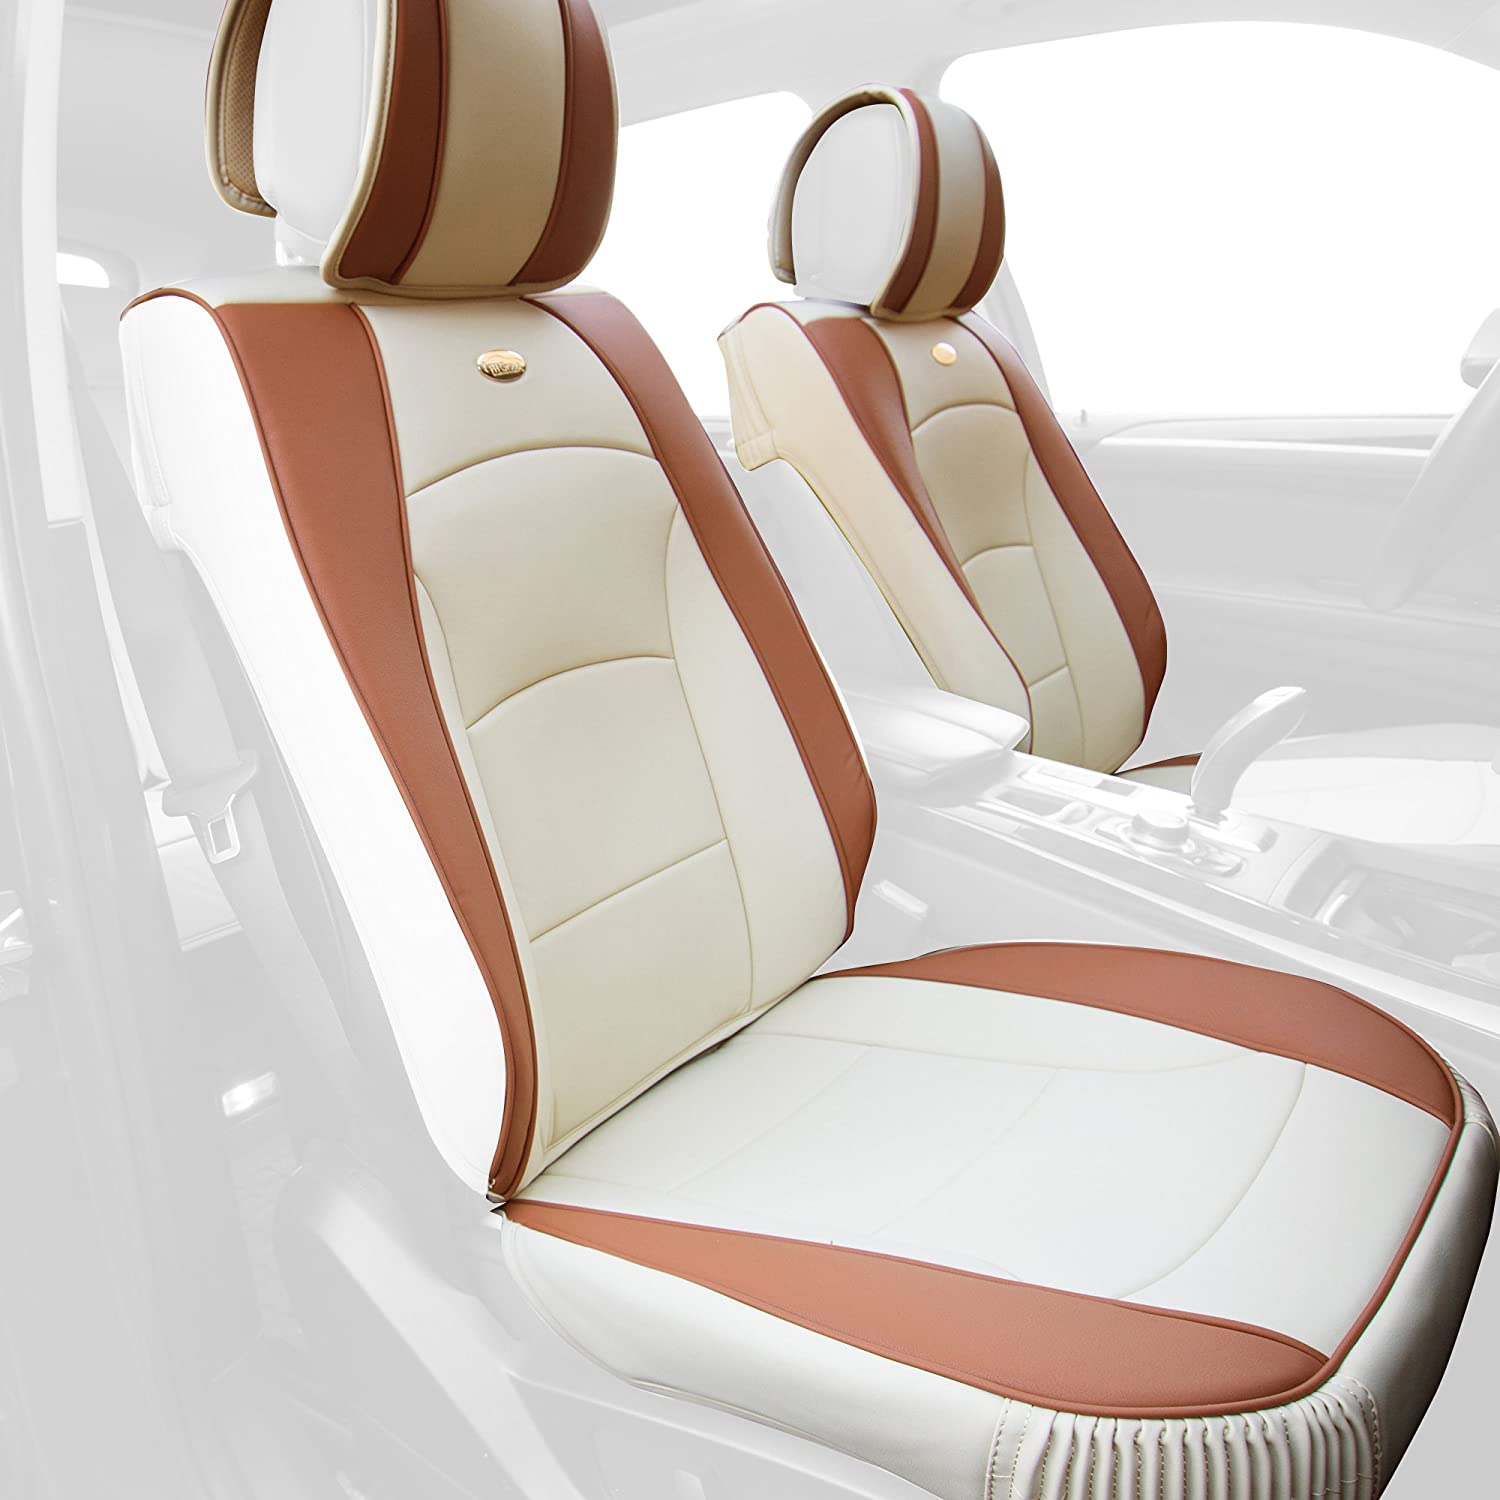 FH Group PU205BEIGETAN102 PU205102 Ultra Comfort Leatherette Front Seat Cushions (Airbag Compatible) Beige/Tan